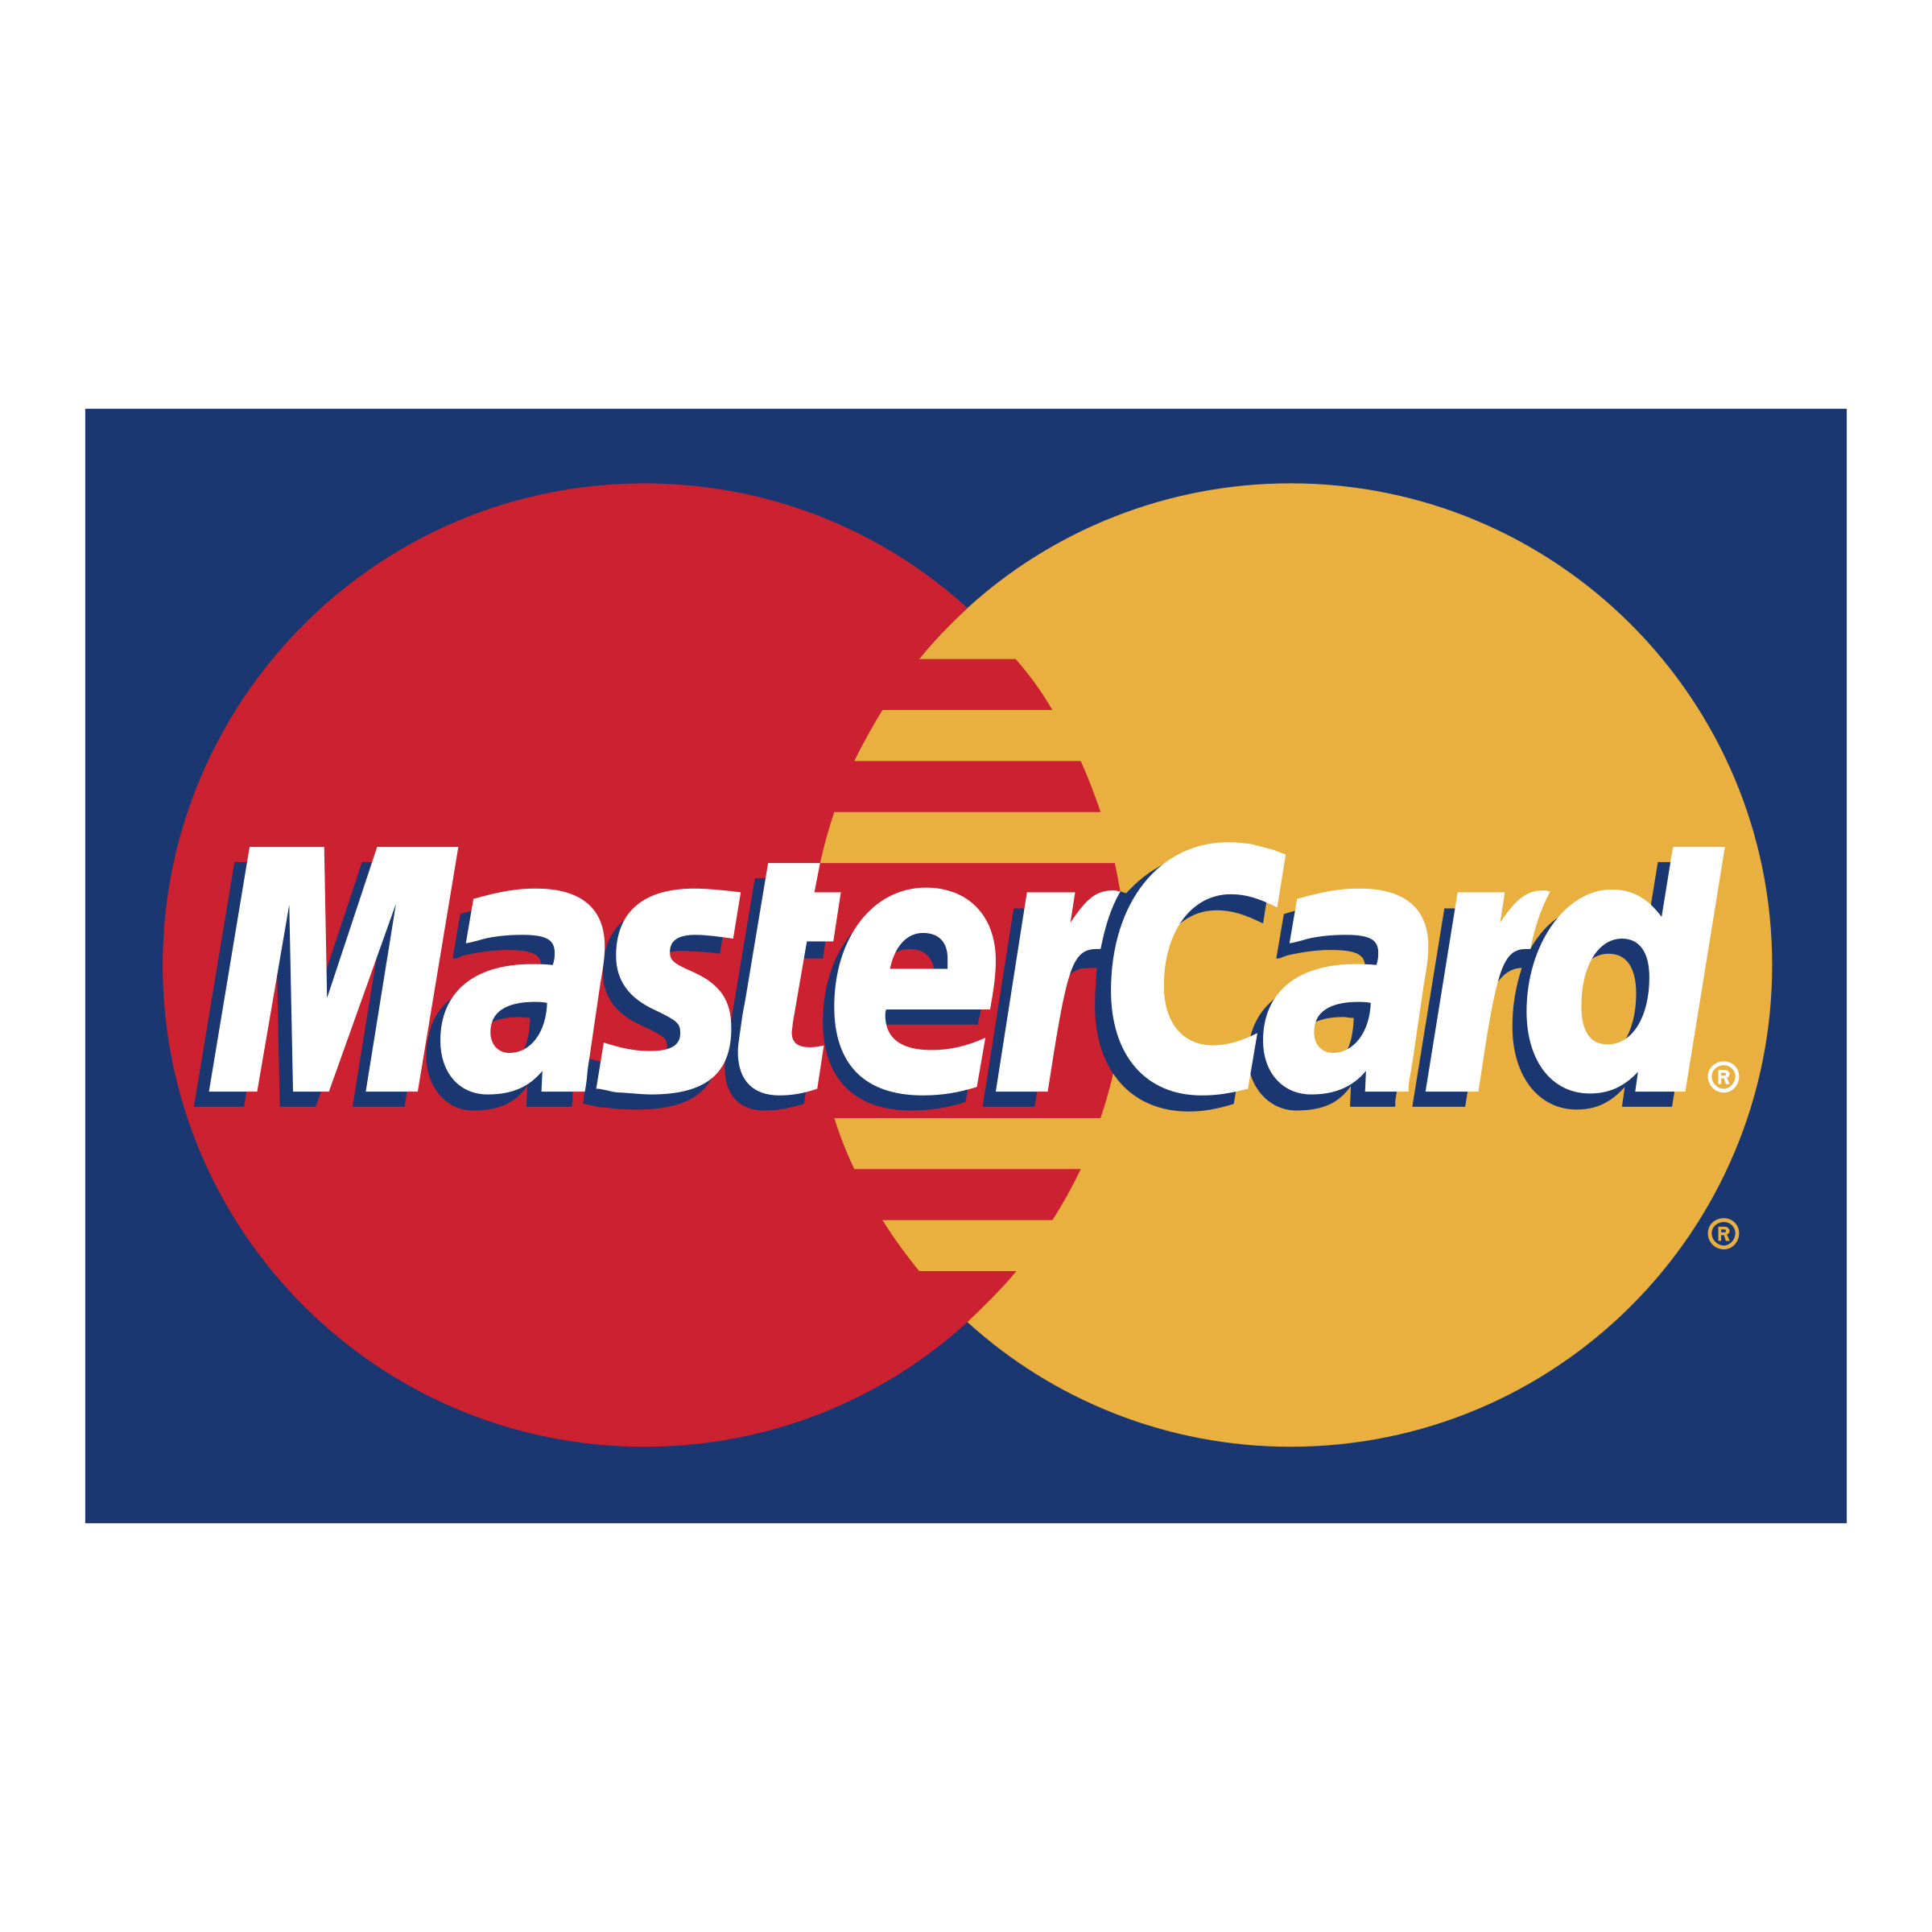 MasterCard Logo - MasterCard Logo PNG Transparent & SVG Vector - Freebie Supply